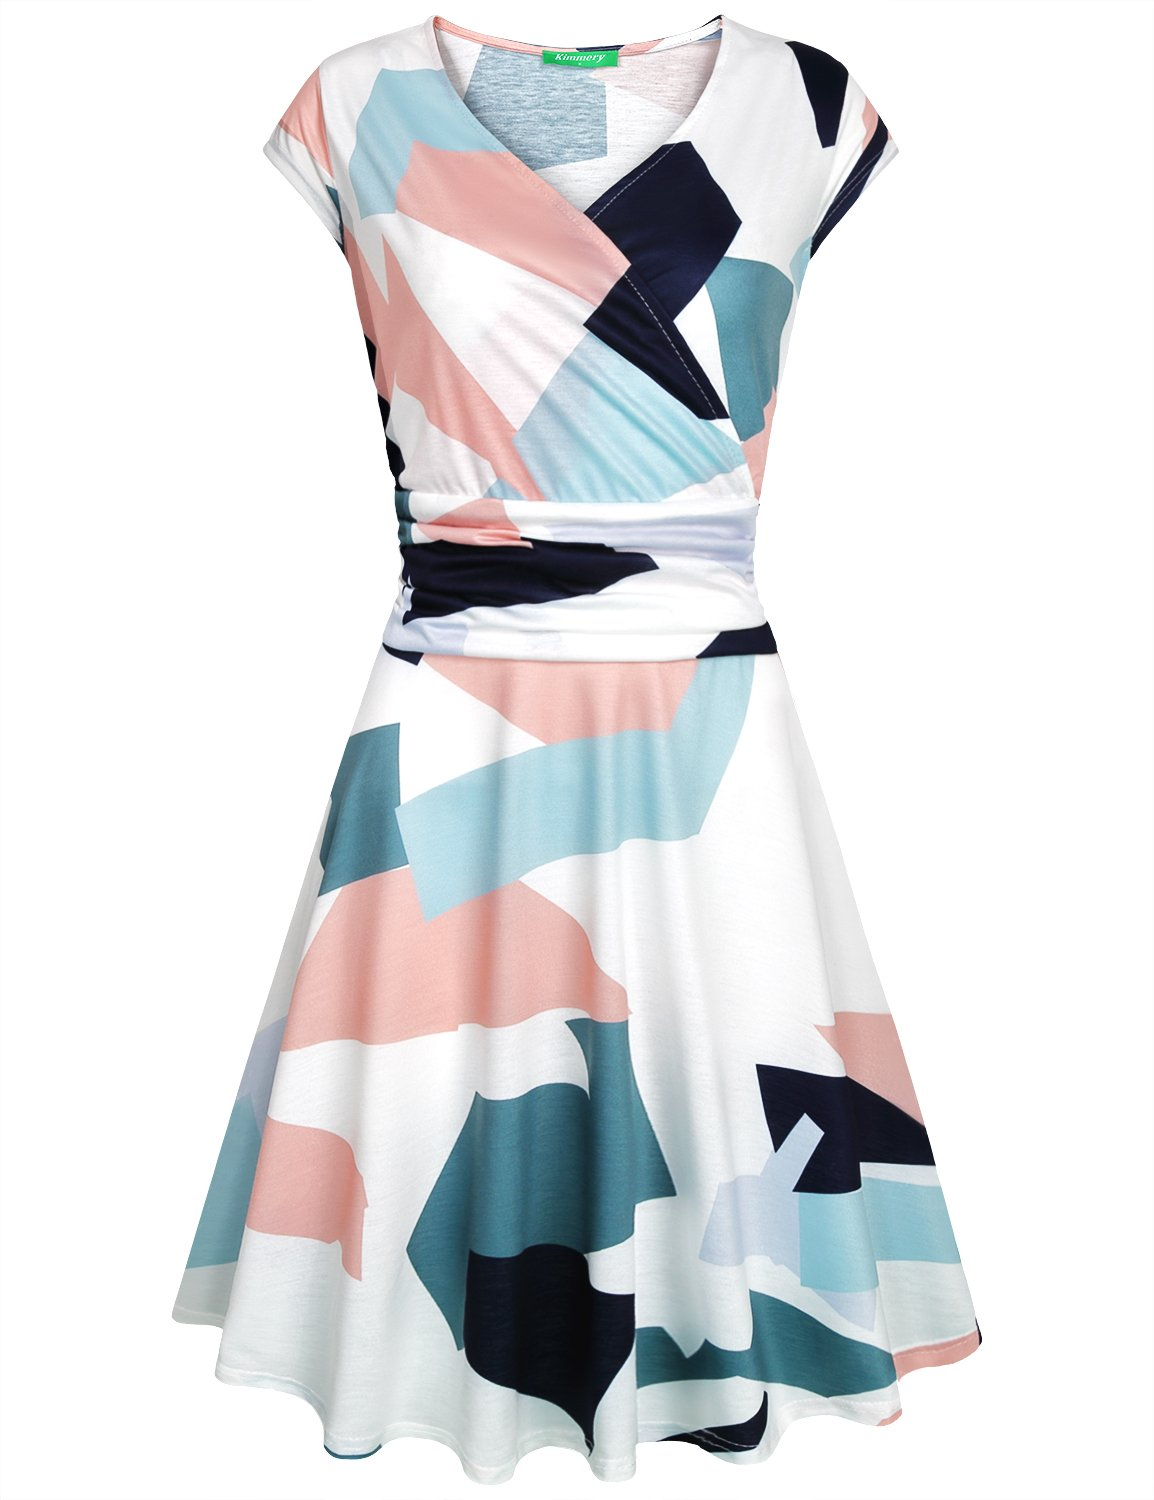 Kimmery Geometric Dress for Women, Stylish Elegant Fancy Skater Summer Dresses Short Sleeve Sexy Deep V Neck Designs Empire Waist Business Casual Knee Length Clothes Comfirmation Printed Outfits XXL